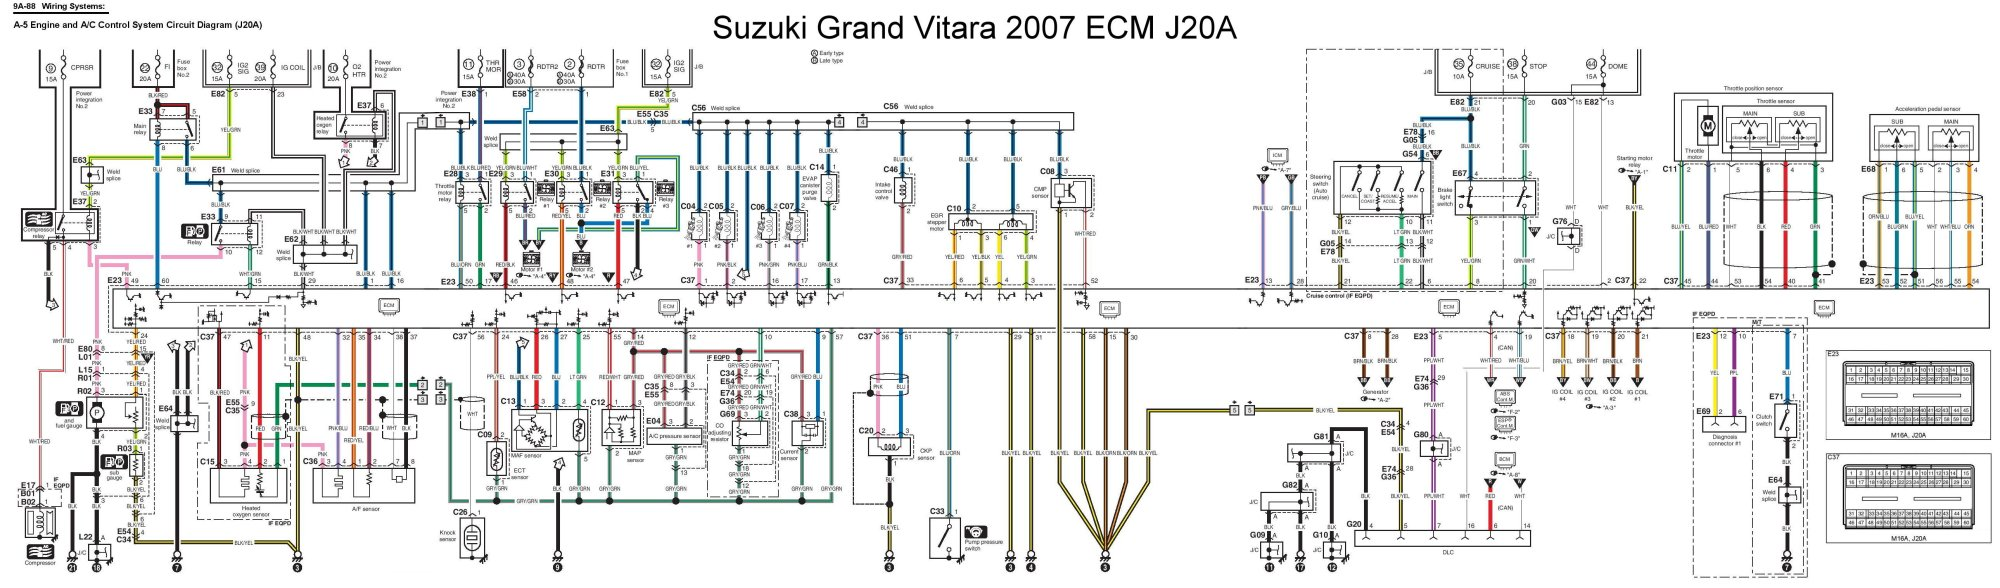 hight resolution of 2003 suzuki aerio wiring diagram detailed wiring diagram 2003 suzuki hayabusa wiring diagram 2003 suzuki motorcycle